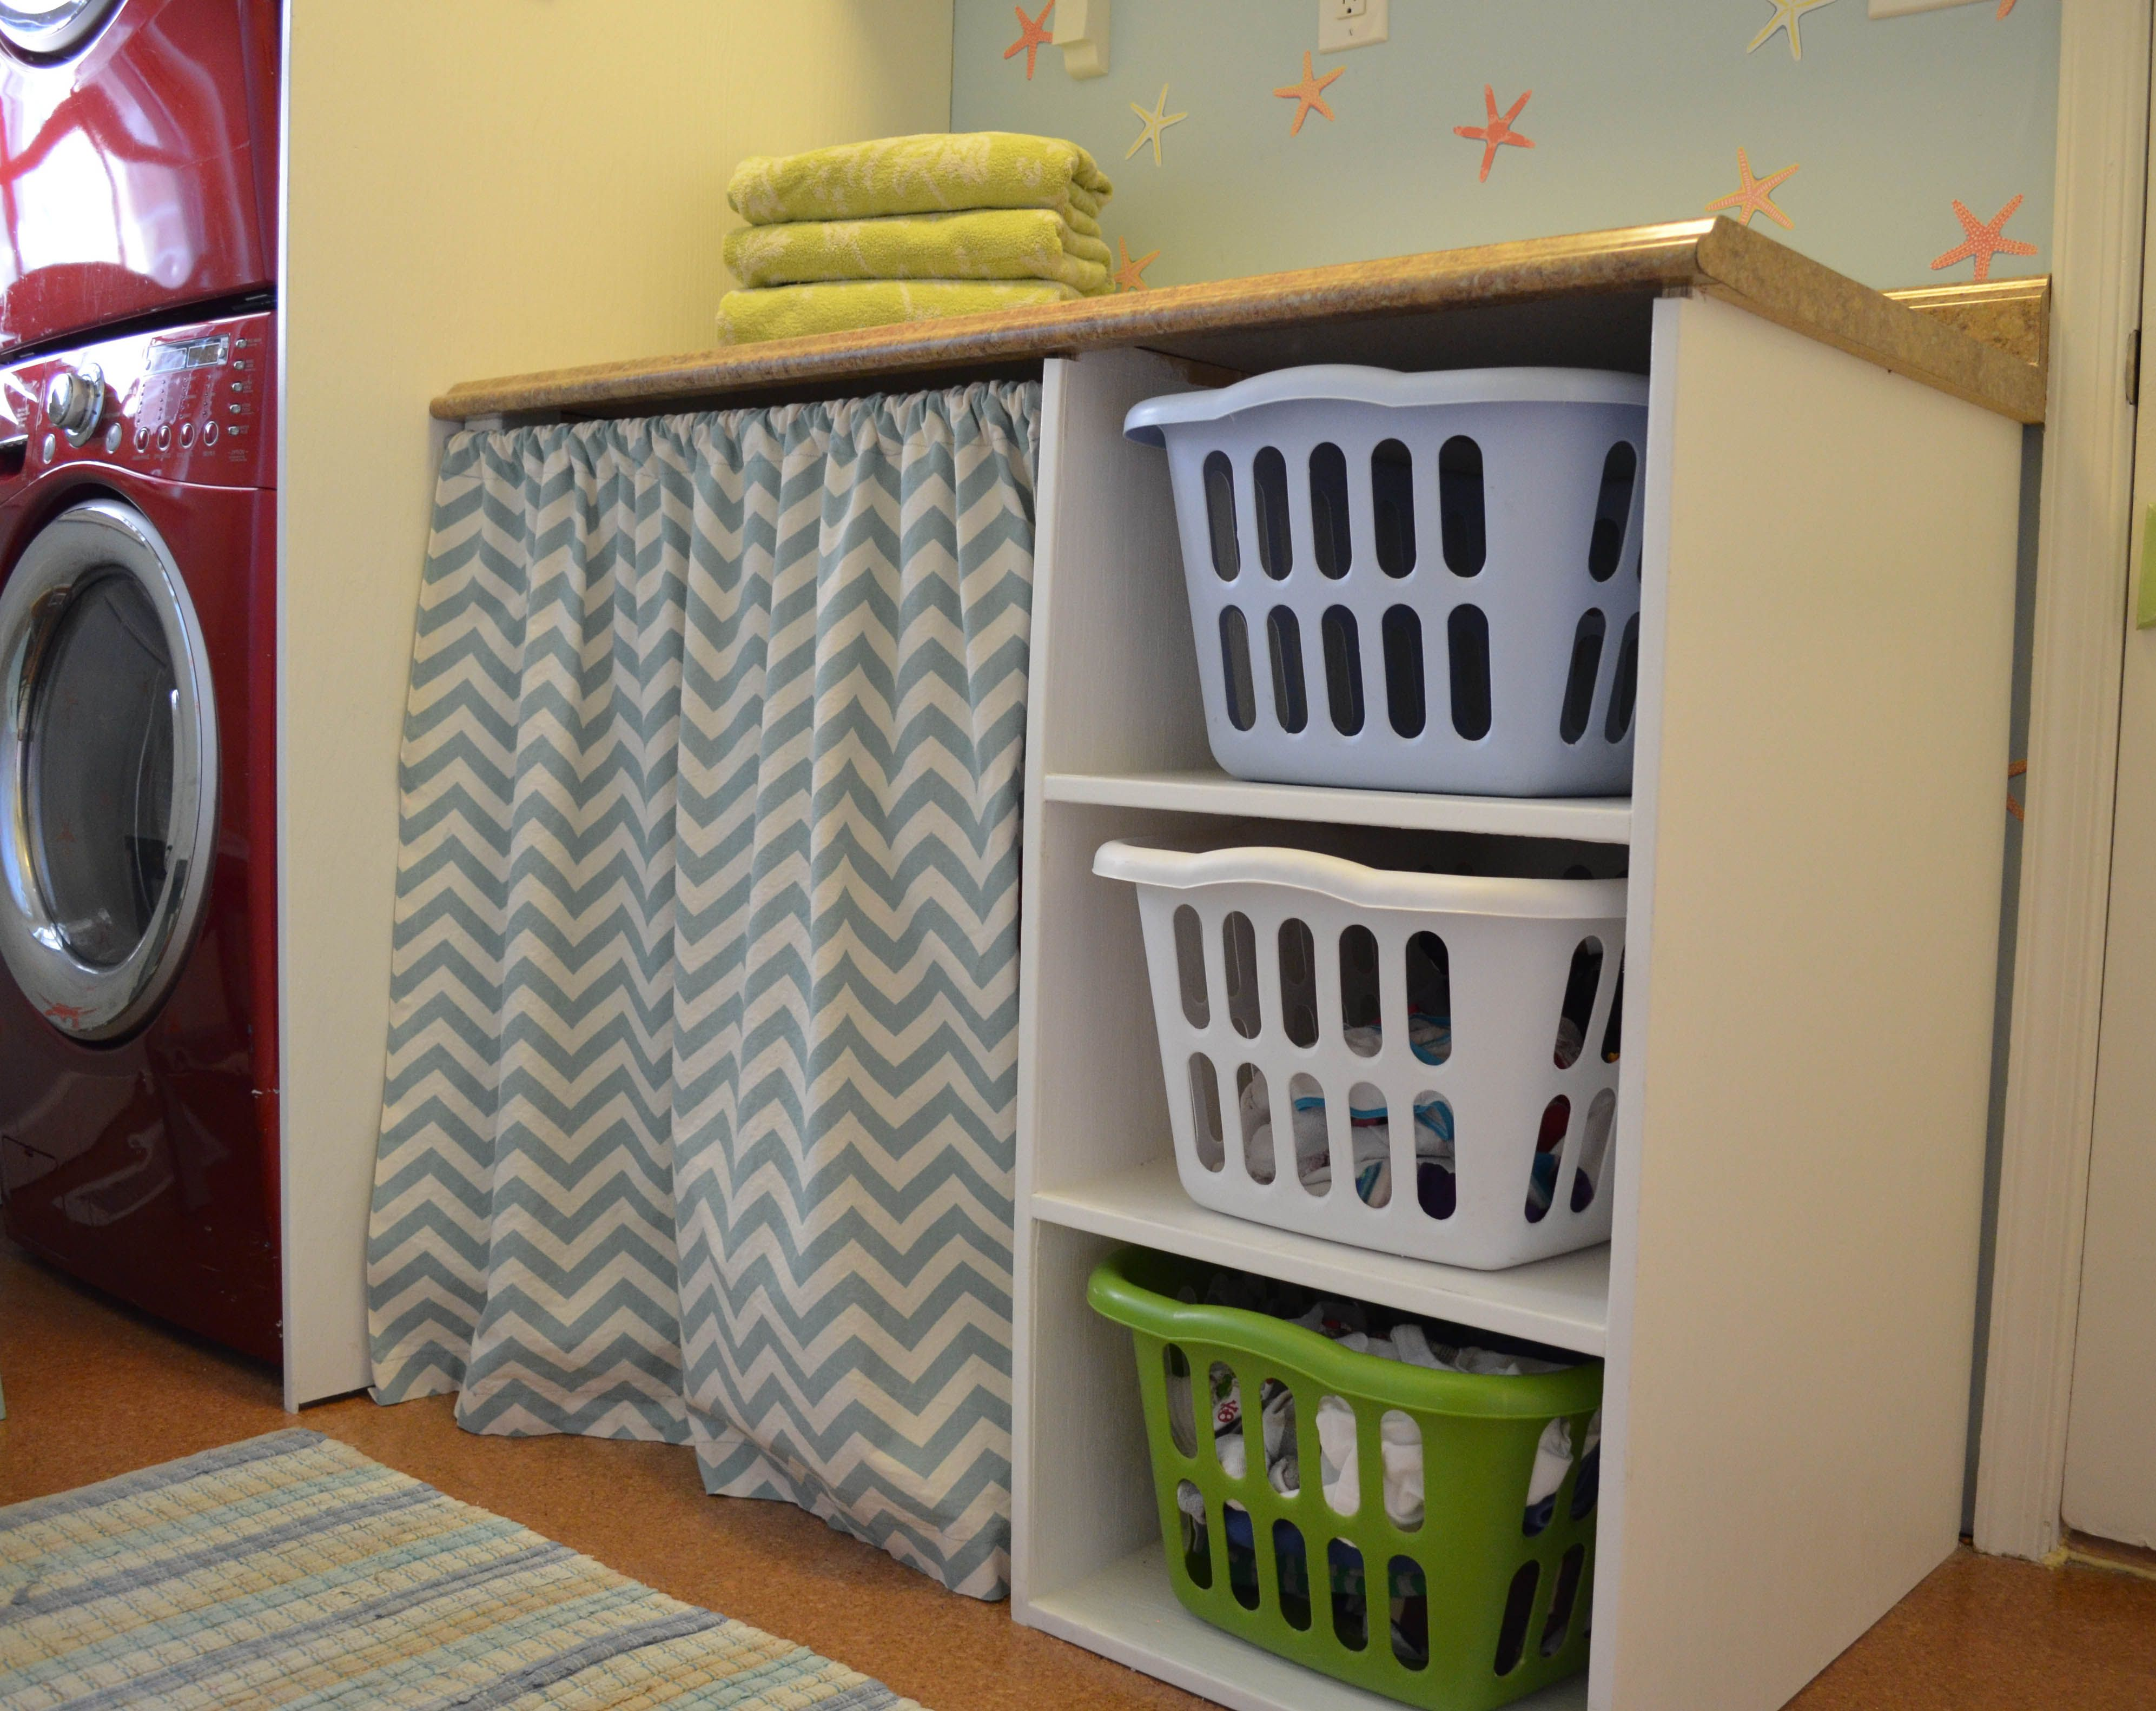 interior hgtv s magic laundry room tiny your ideas for washer liberal home dryer stackable design clever storage